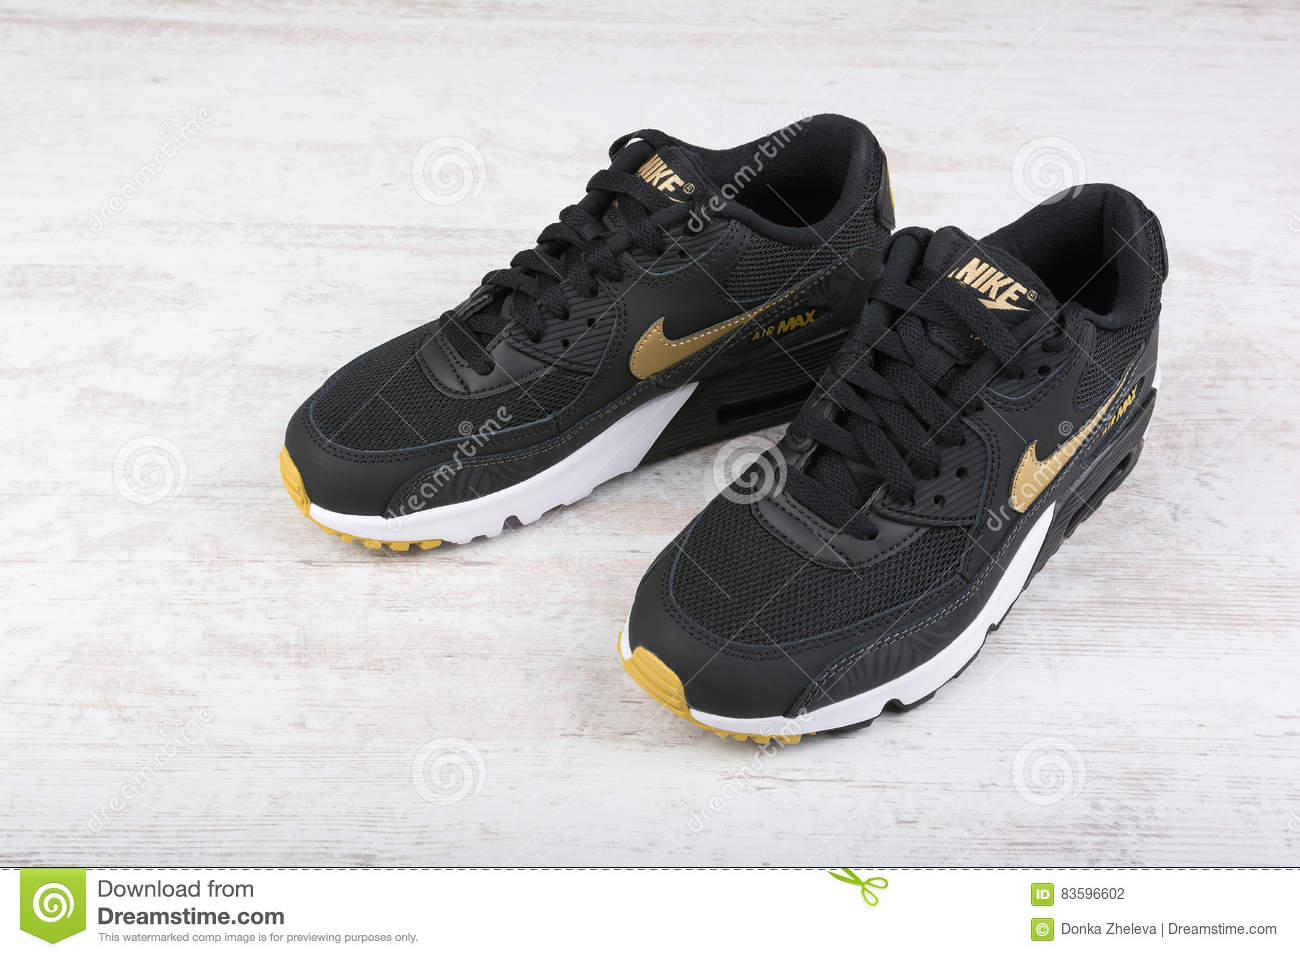 best website 9ffd9 fbe73 Nike Air MAX women`s shoes - sneakers in black, on white wooden background.